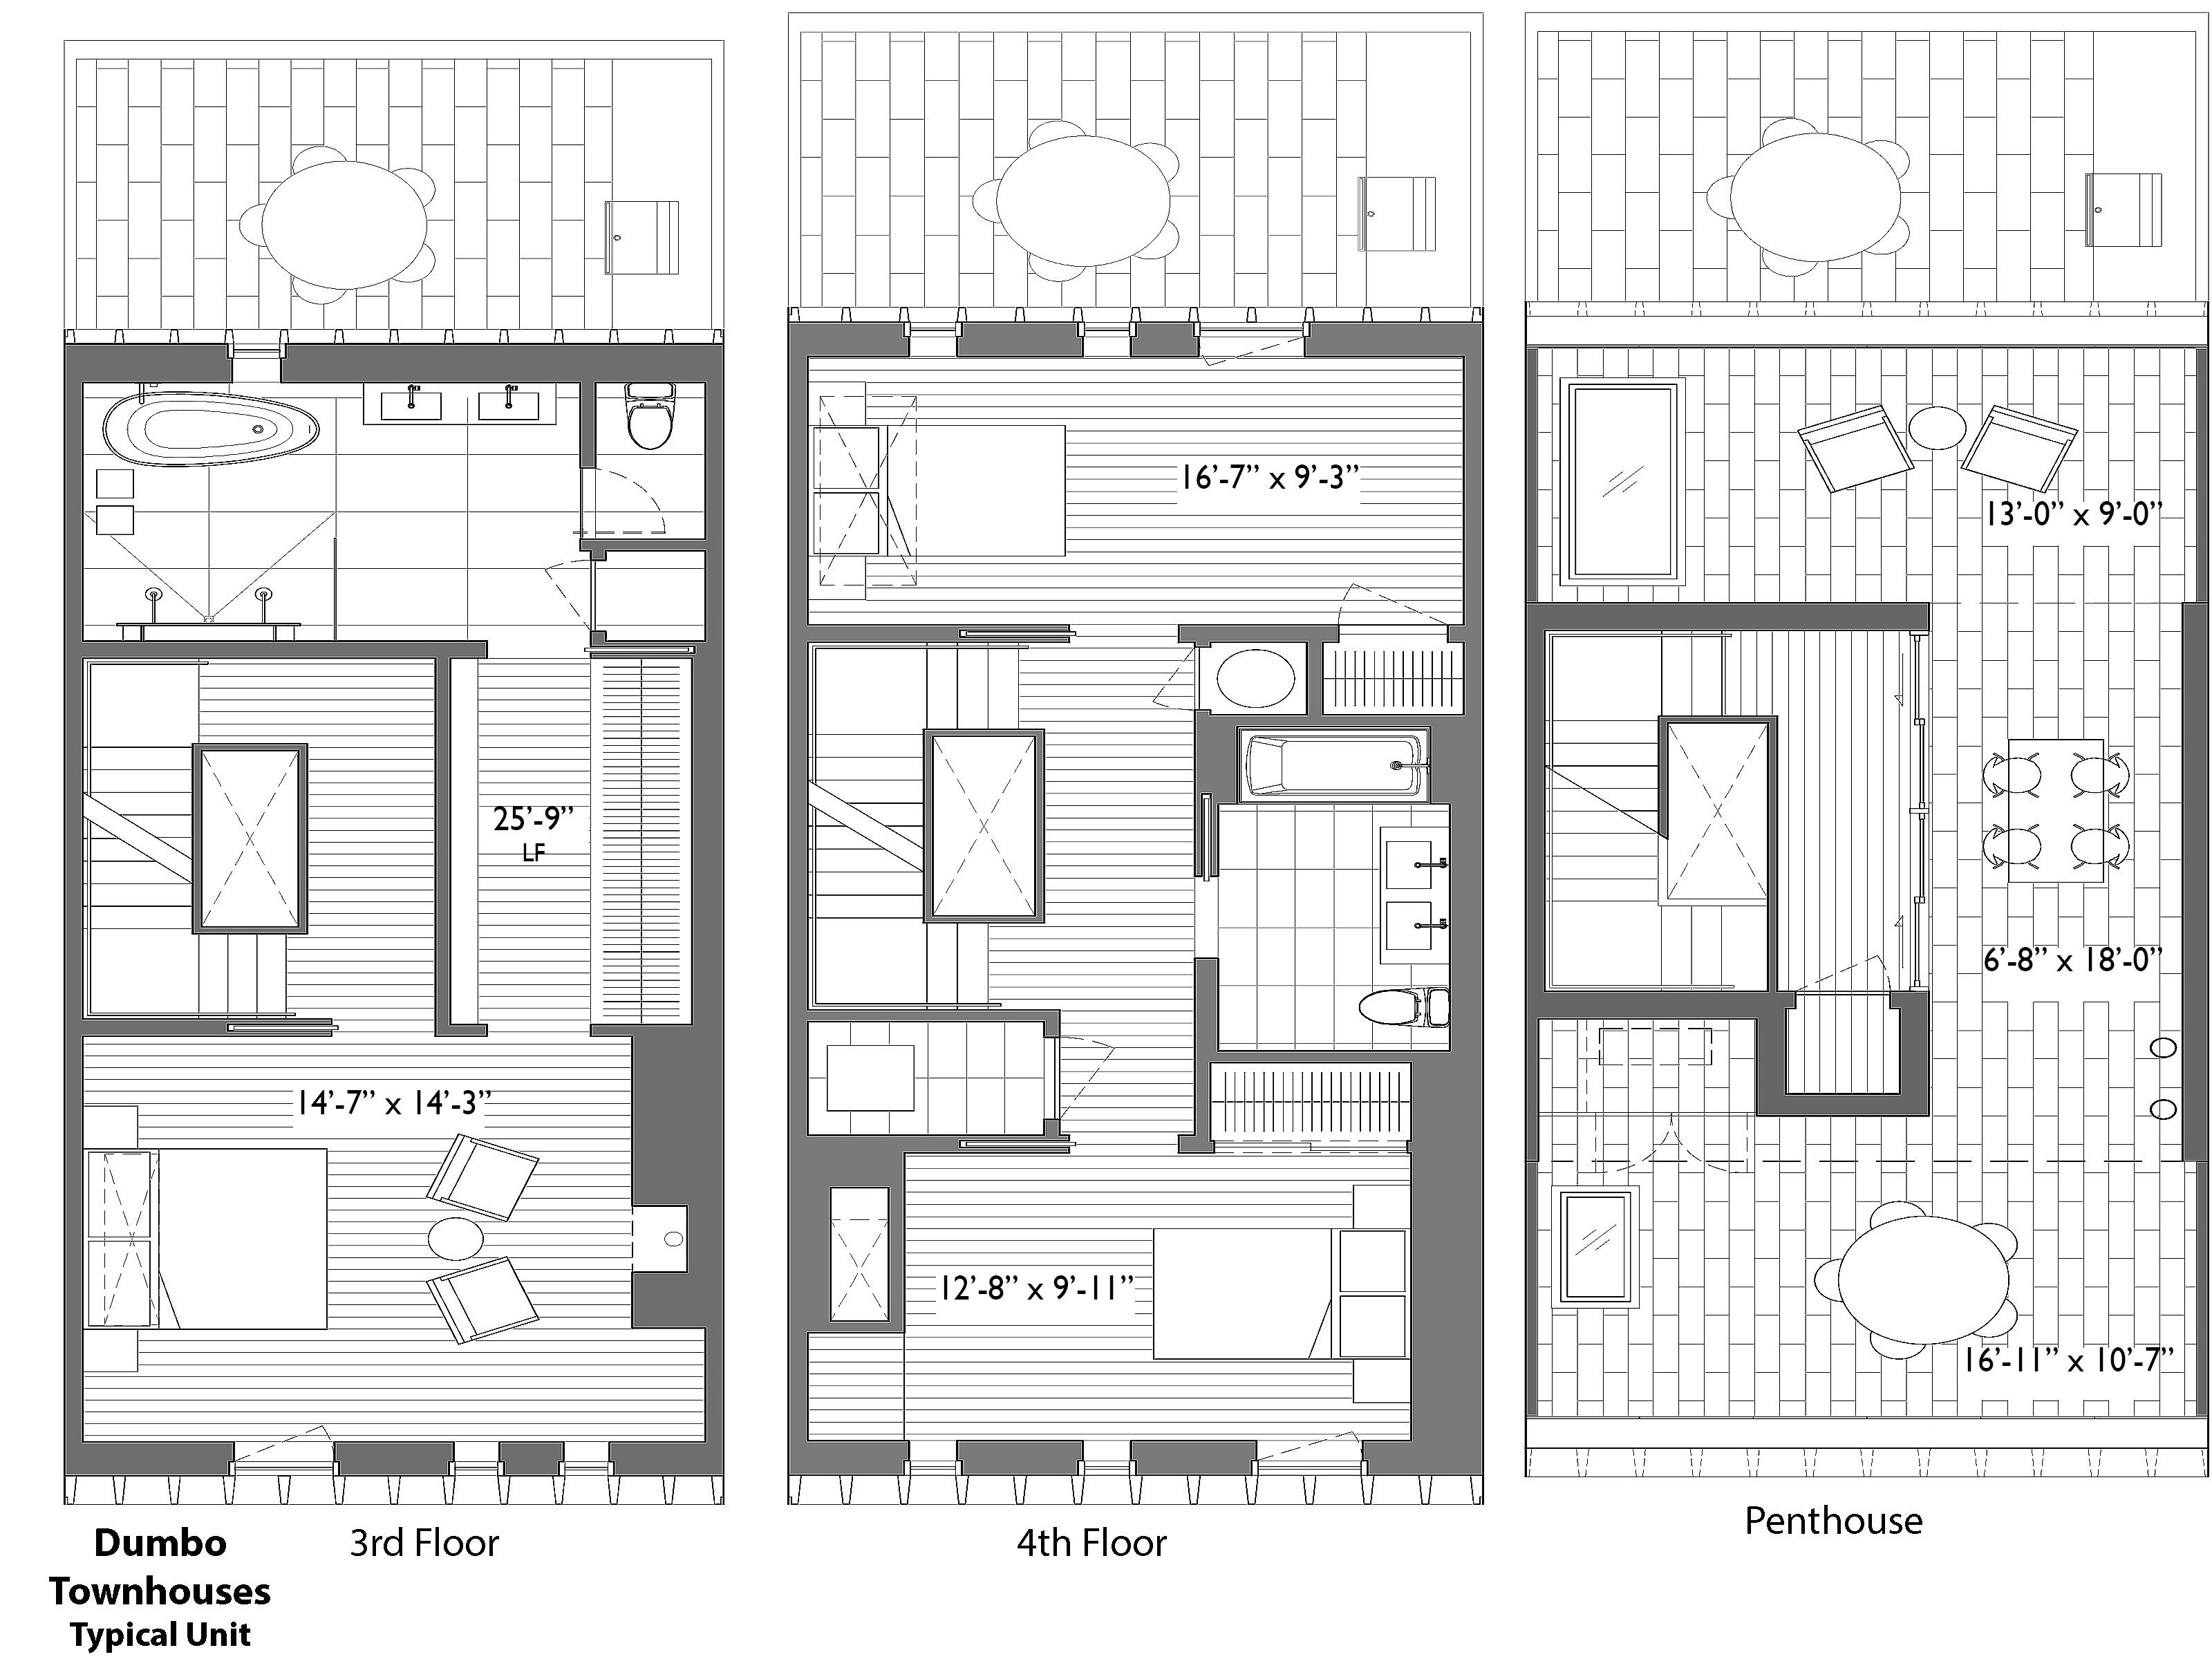 Nyc Townhouse Floor Plans: Dumbo's Contemporary Townhouses Brooklyn, NY 11201